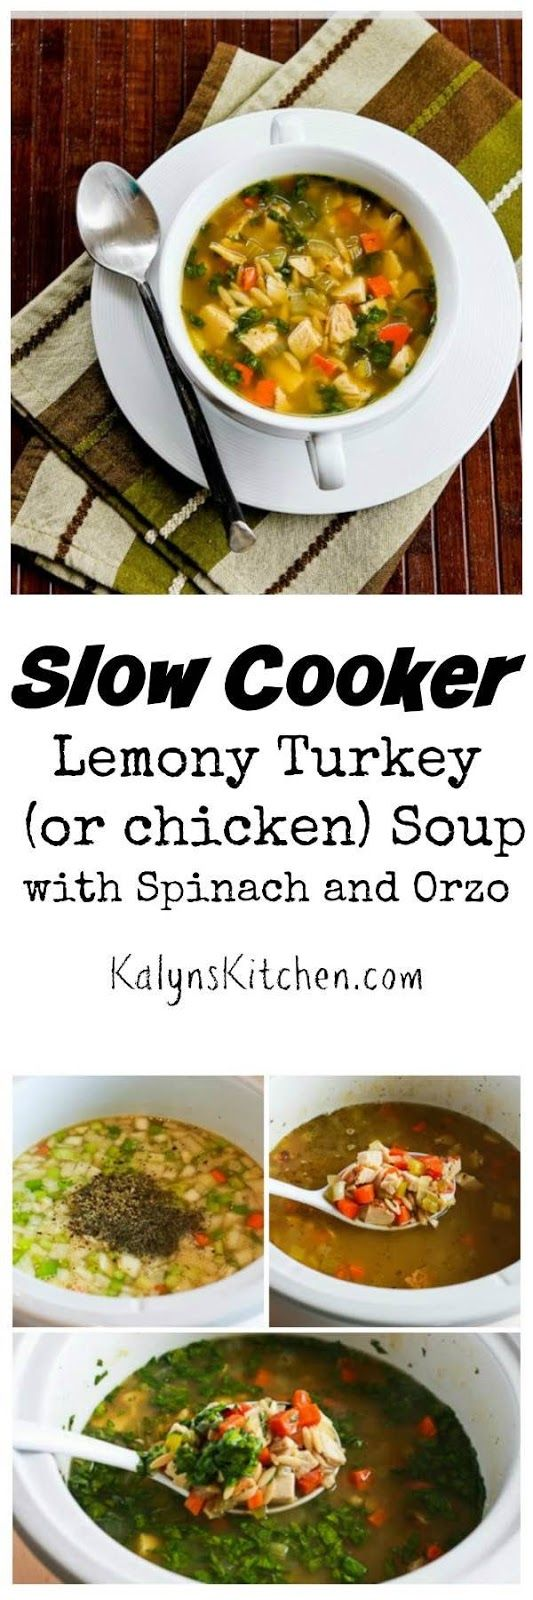 Slow Cooker Lemony Turkey (or chicken) Soup with Spinach and Orzo is ...